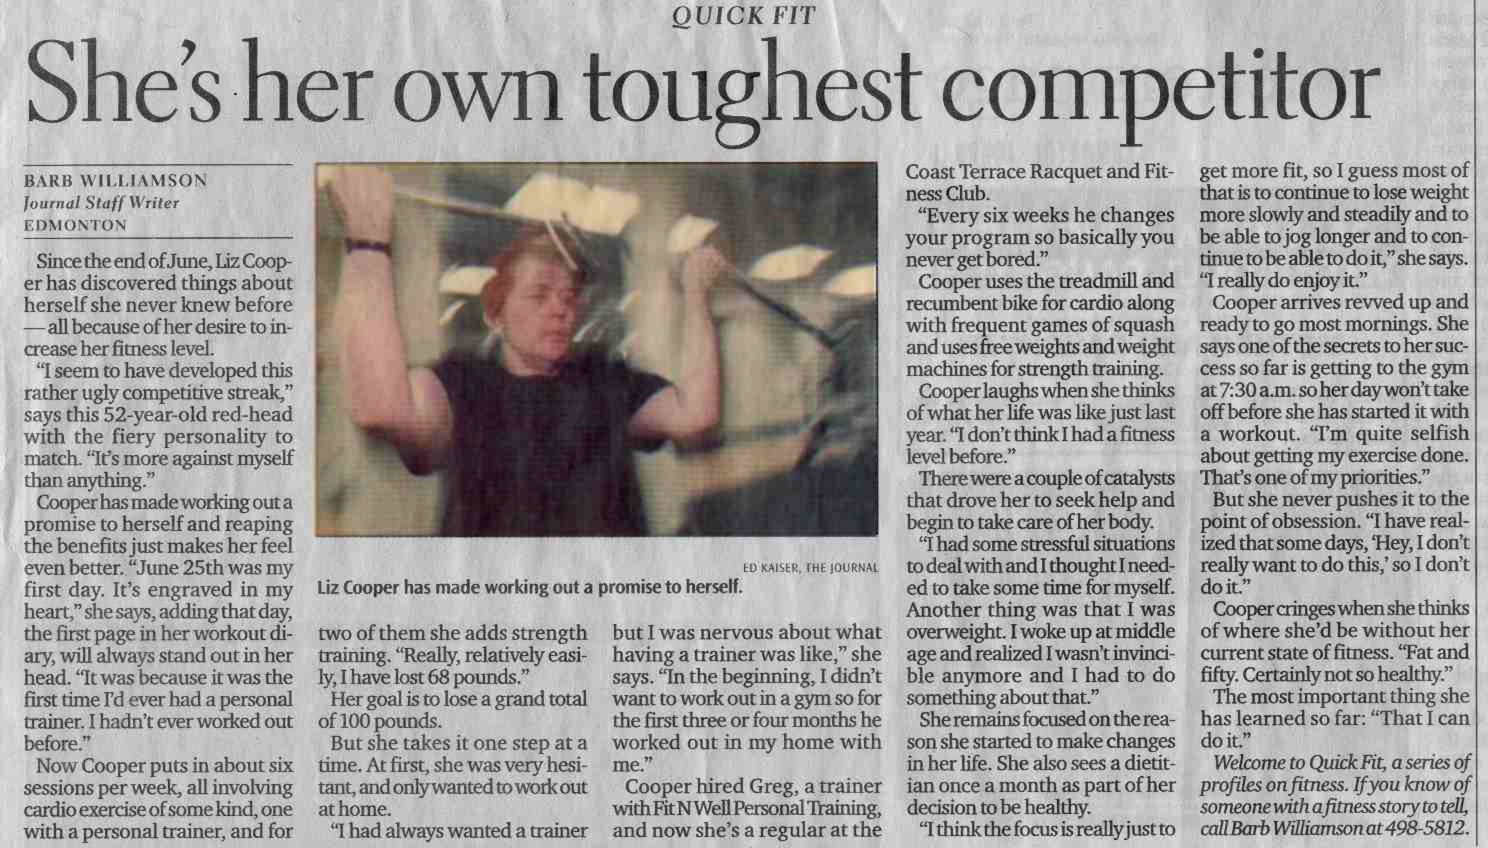 Edmonton Journal article about Fit 'N' Well Personal Trainer and Client.